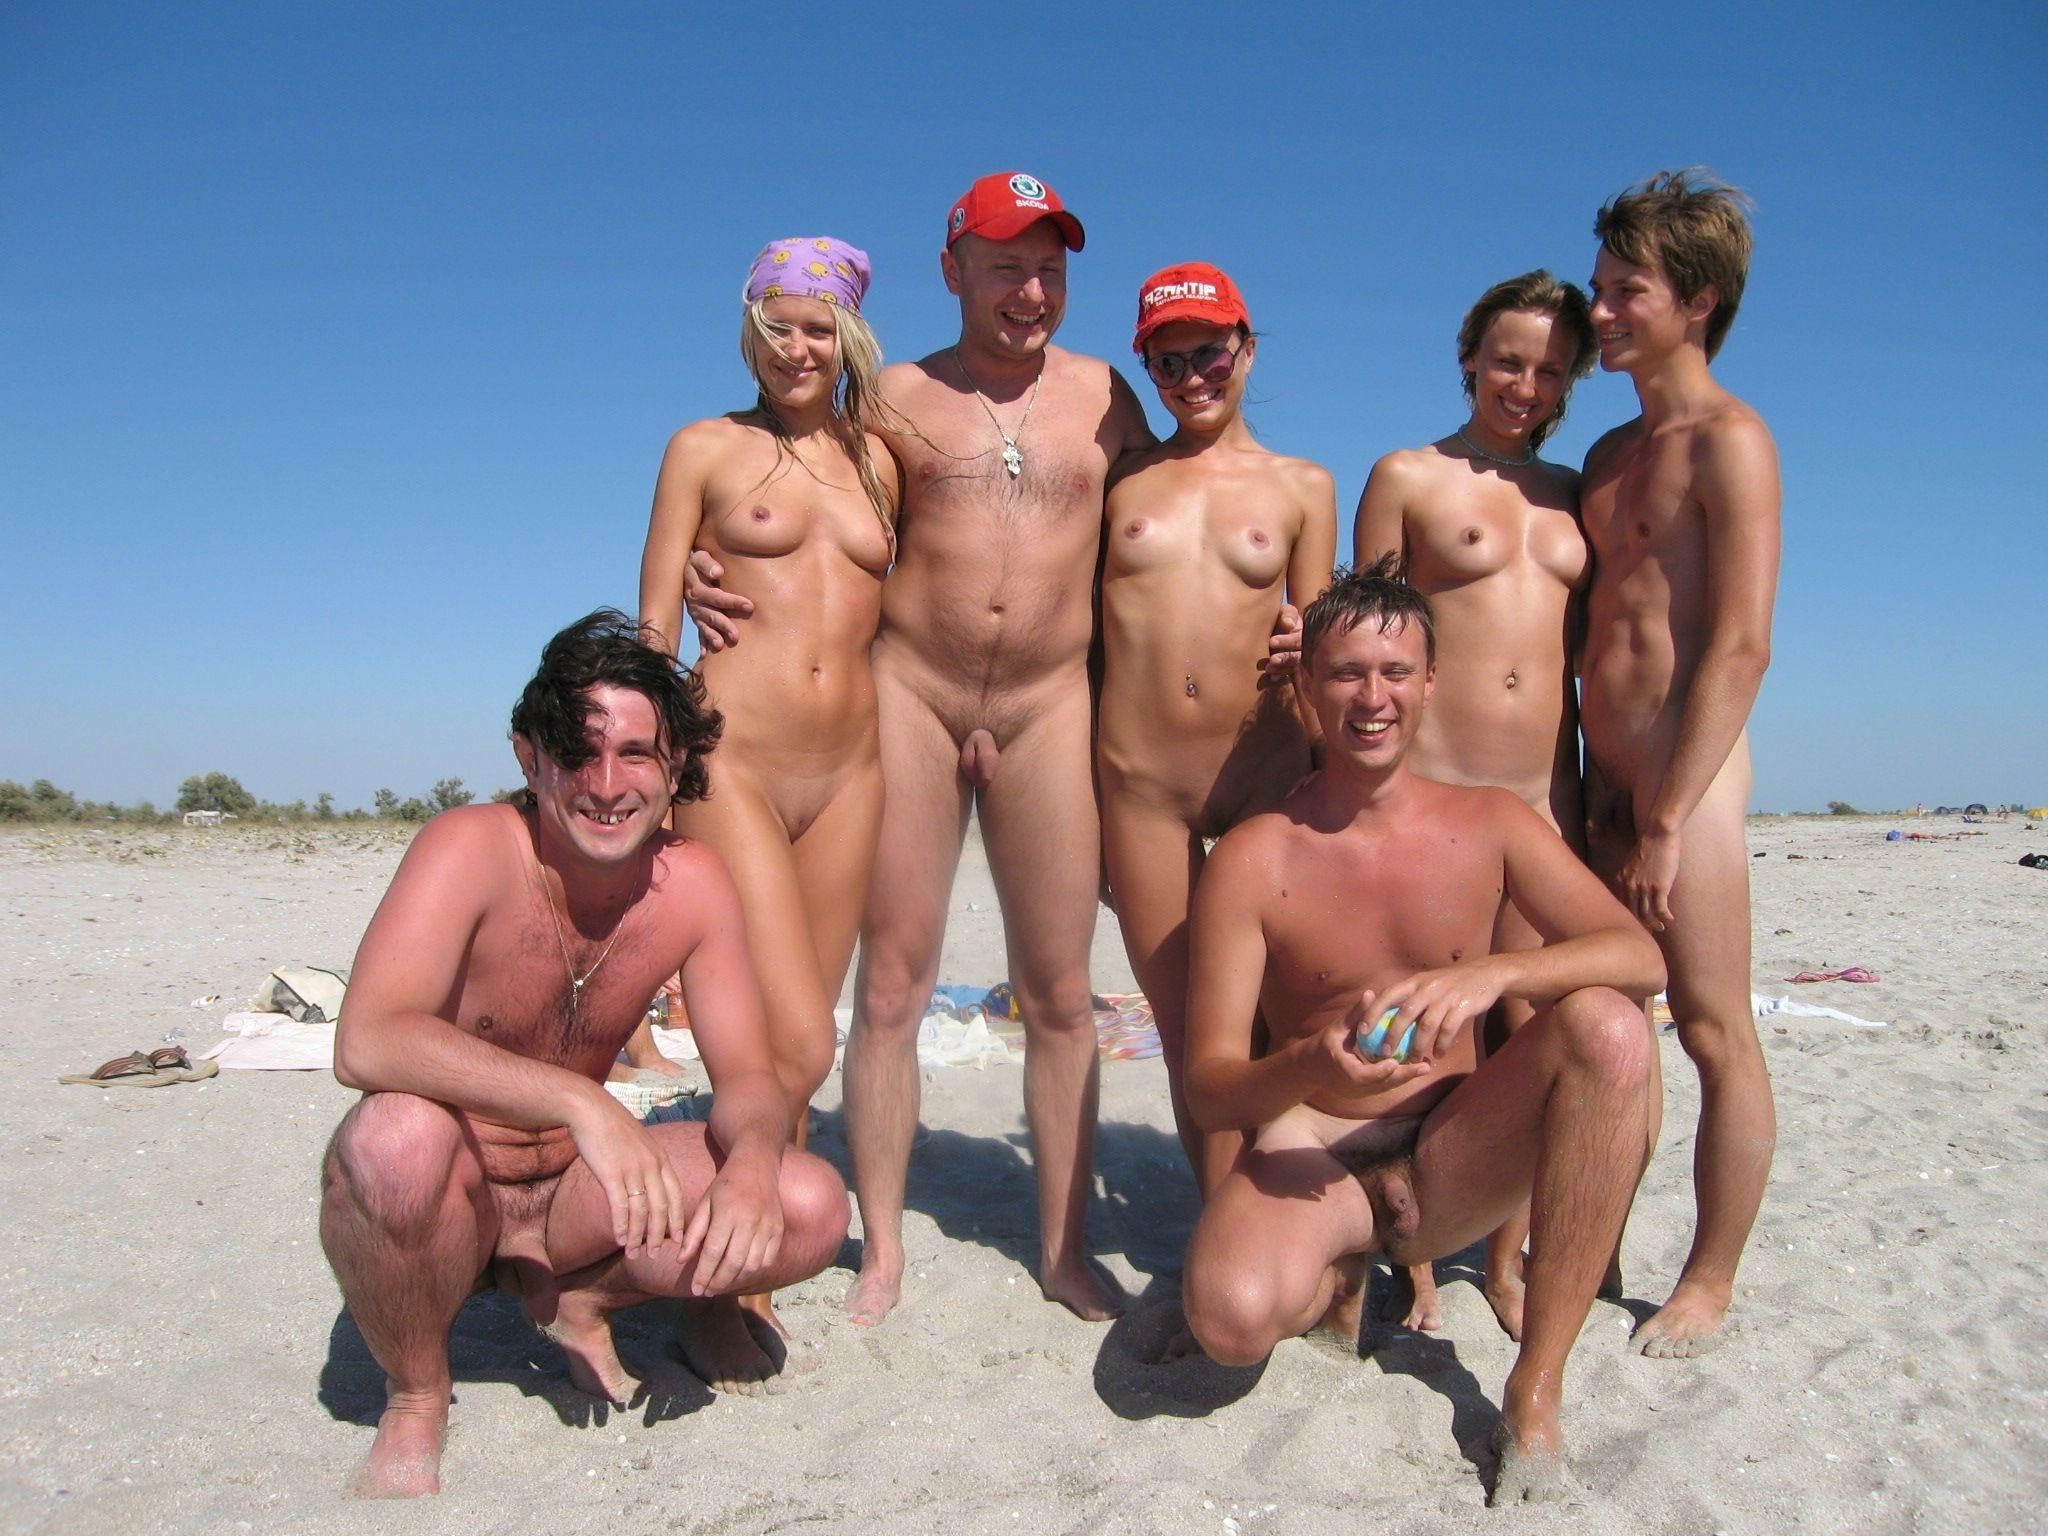 Naughty Teens At A Beach Party